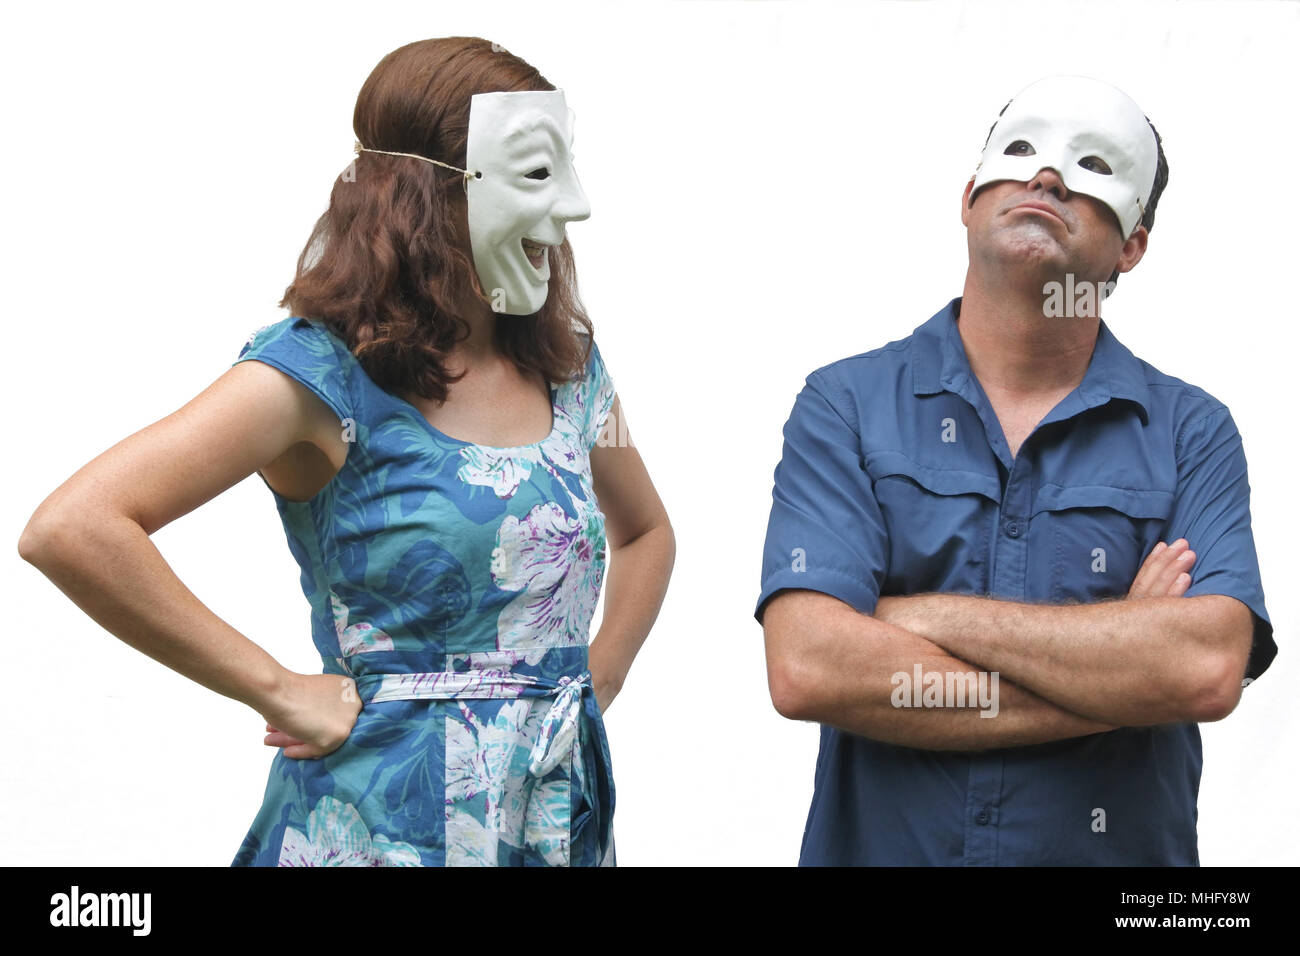 Confident woman wearing a happy face mask looks at at unconfident man who wearing a sad face mask. Real people. Copy space - Stock Image